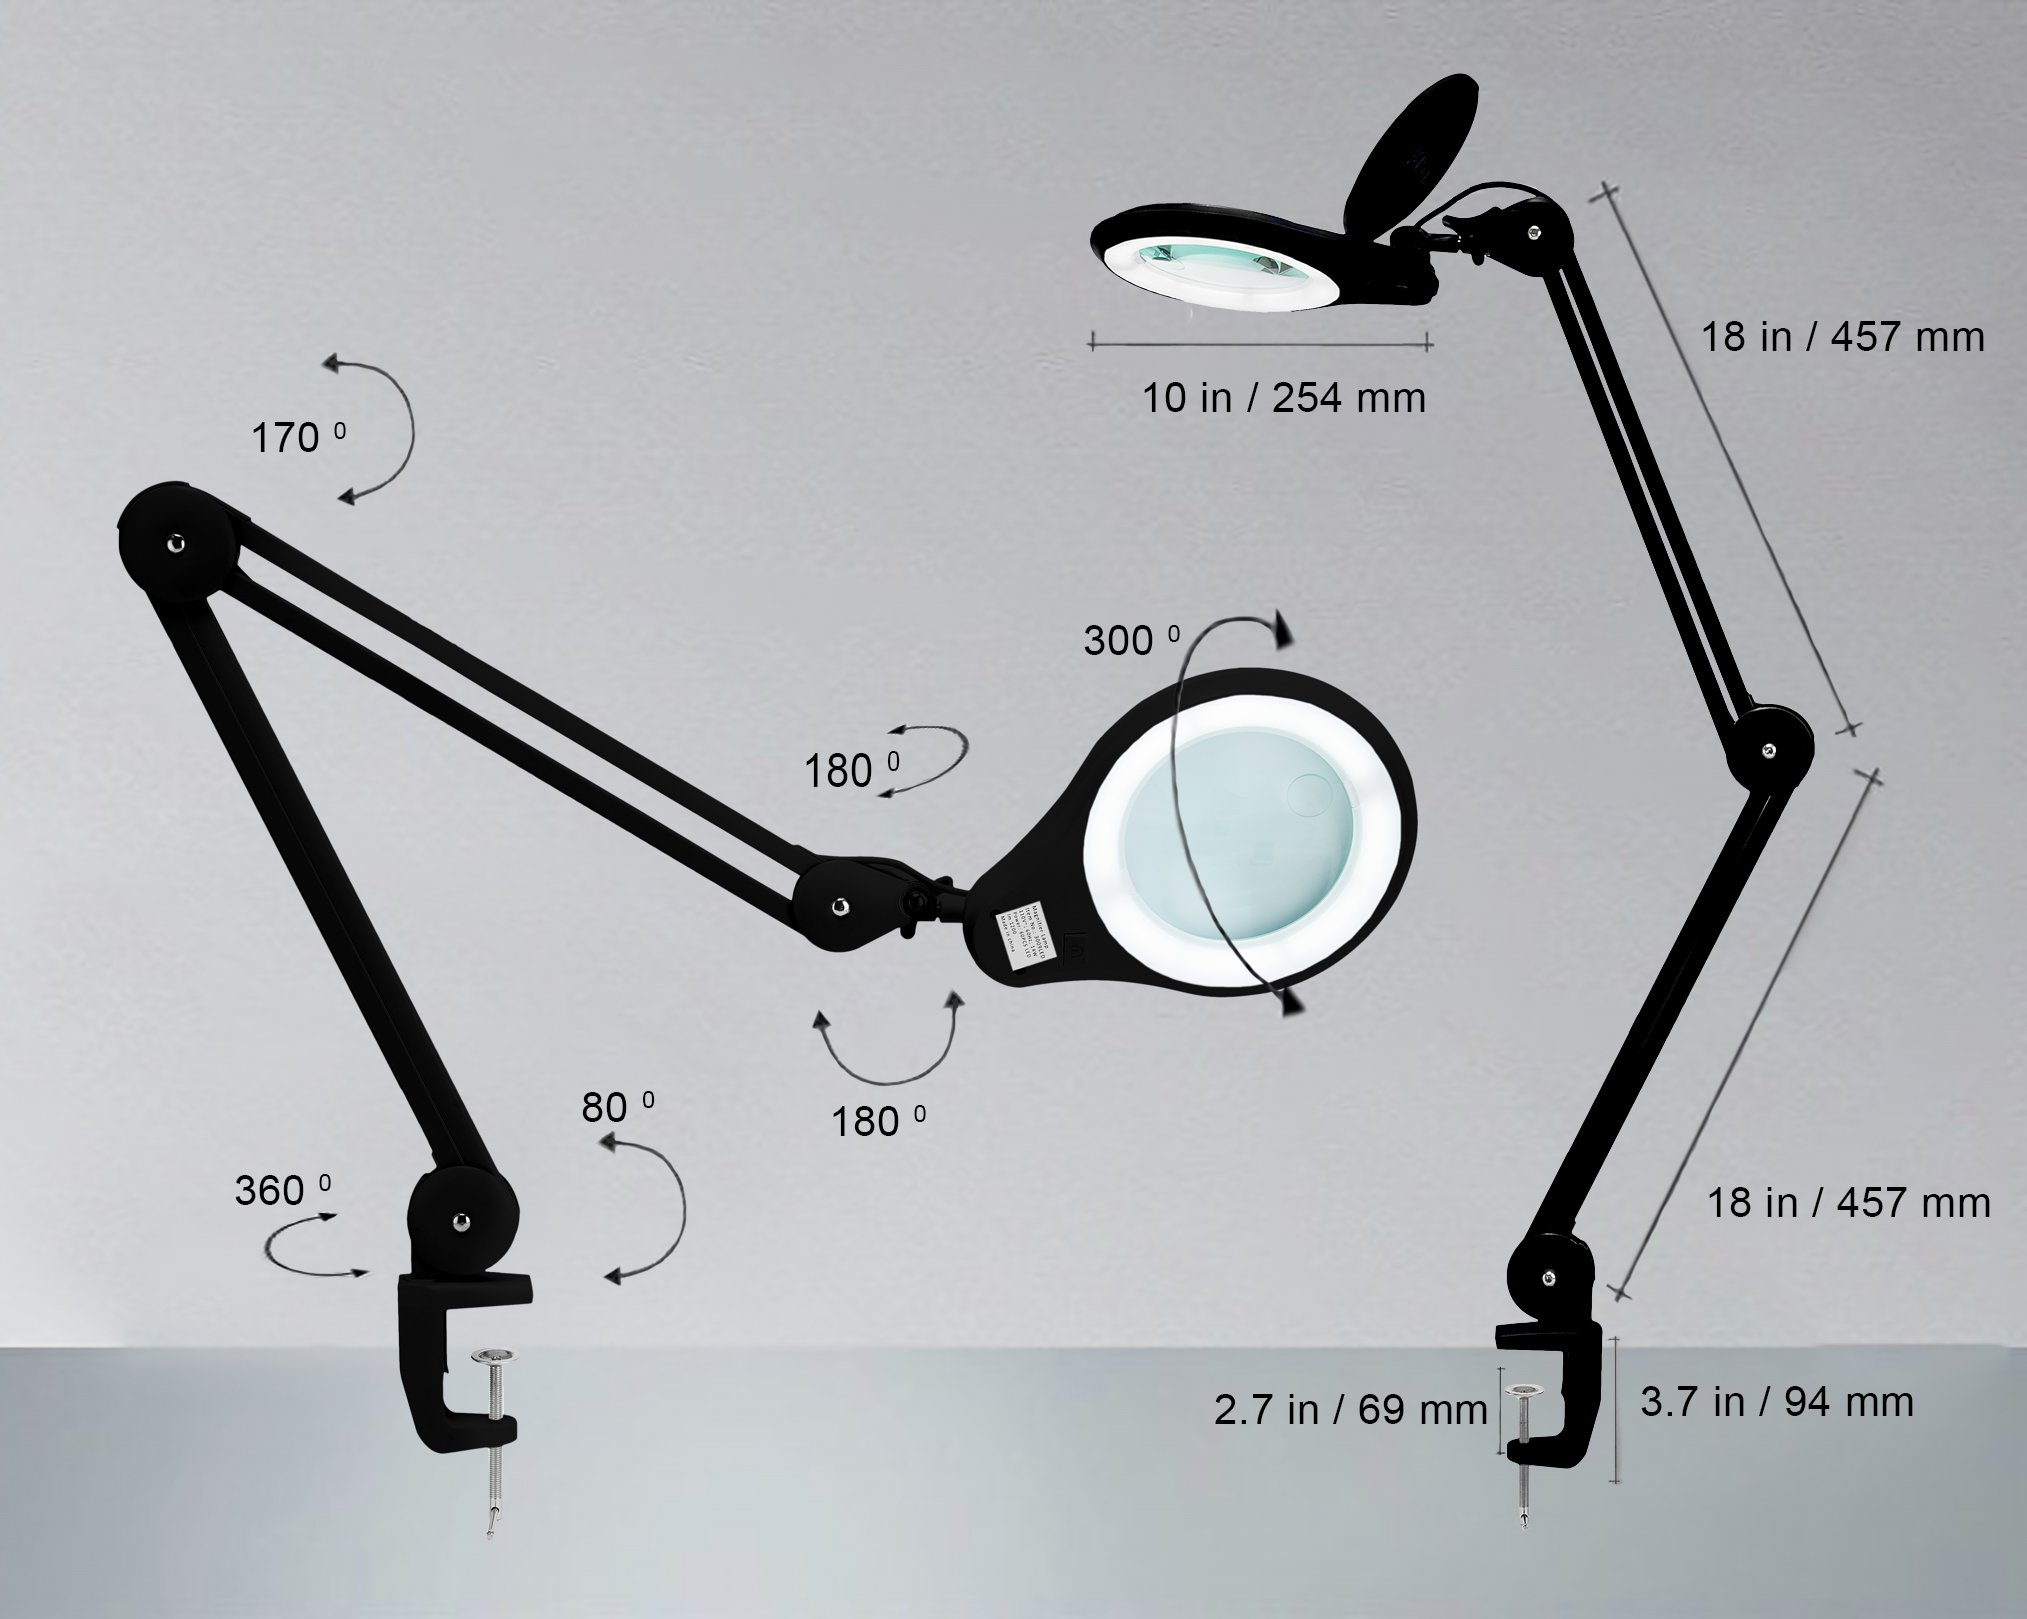 [New Model] Neatfi Bifocals 1,200 Lumens Super LED Magnifying Lamp with Clamp | 5 Diopter with 20 Diopter | Dimmable | 60PCS SMD LED | 5'' Diameter Lens | Adjustable Arm Utility Clamp (Black) by Neatfi (Image #6)